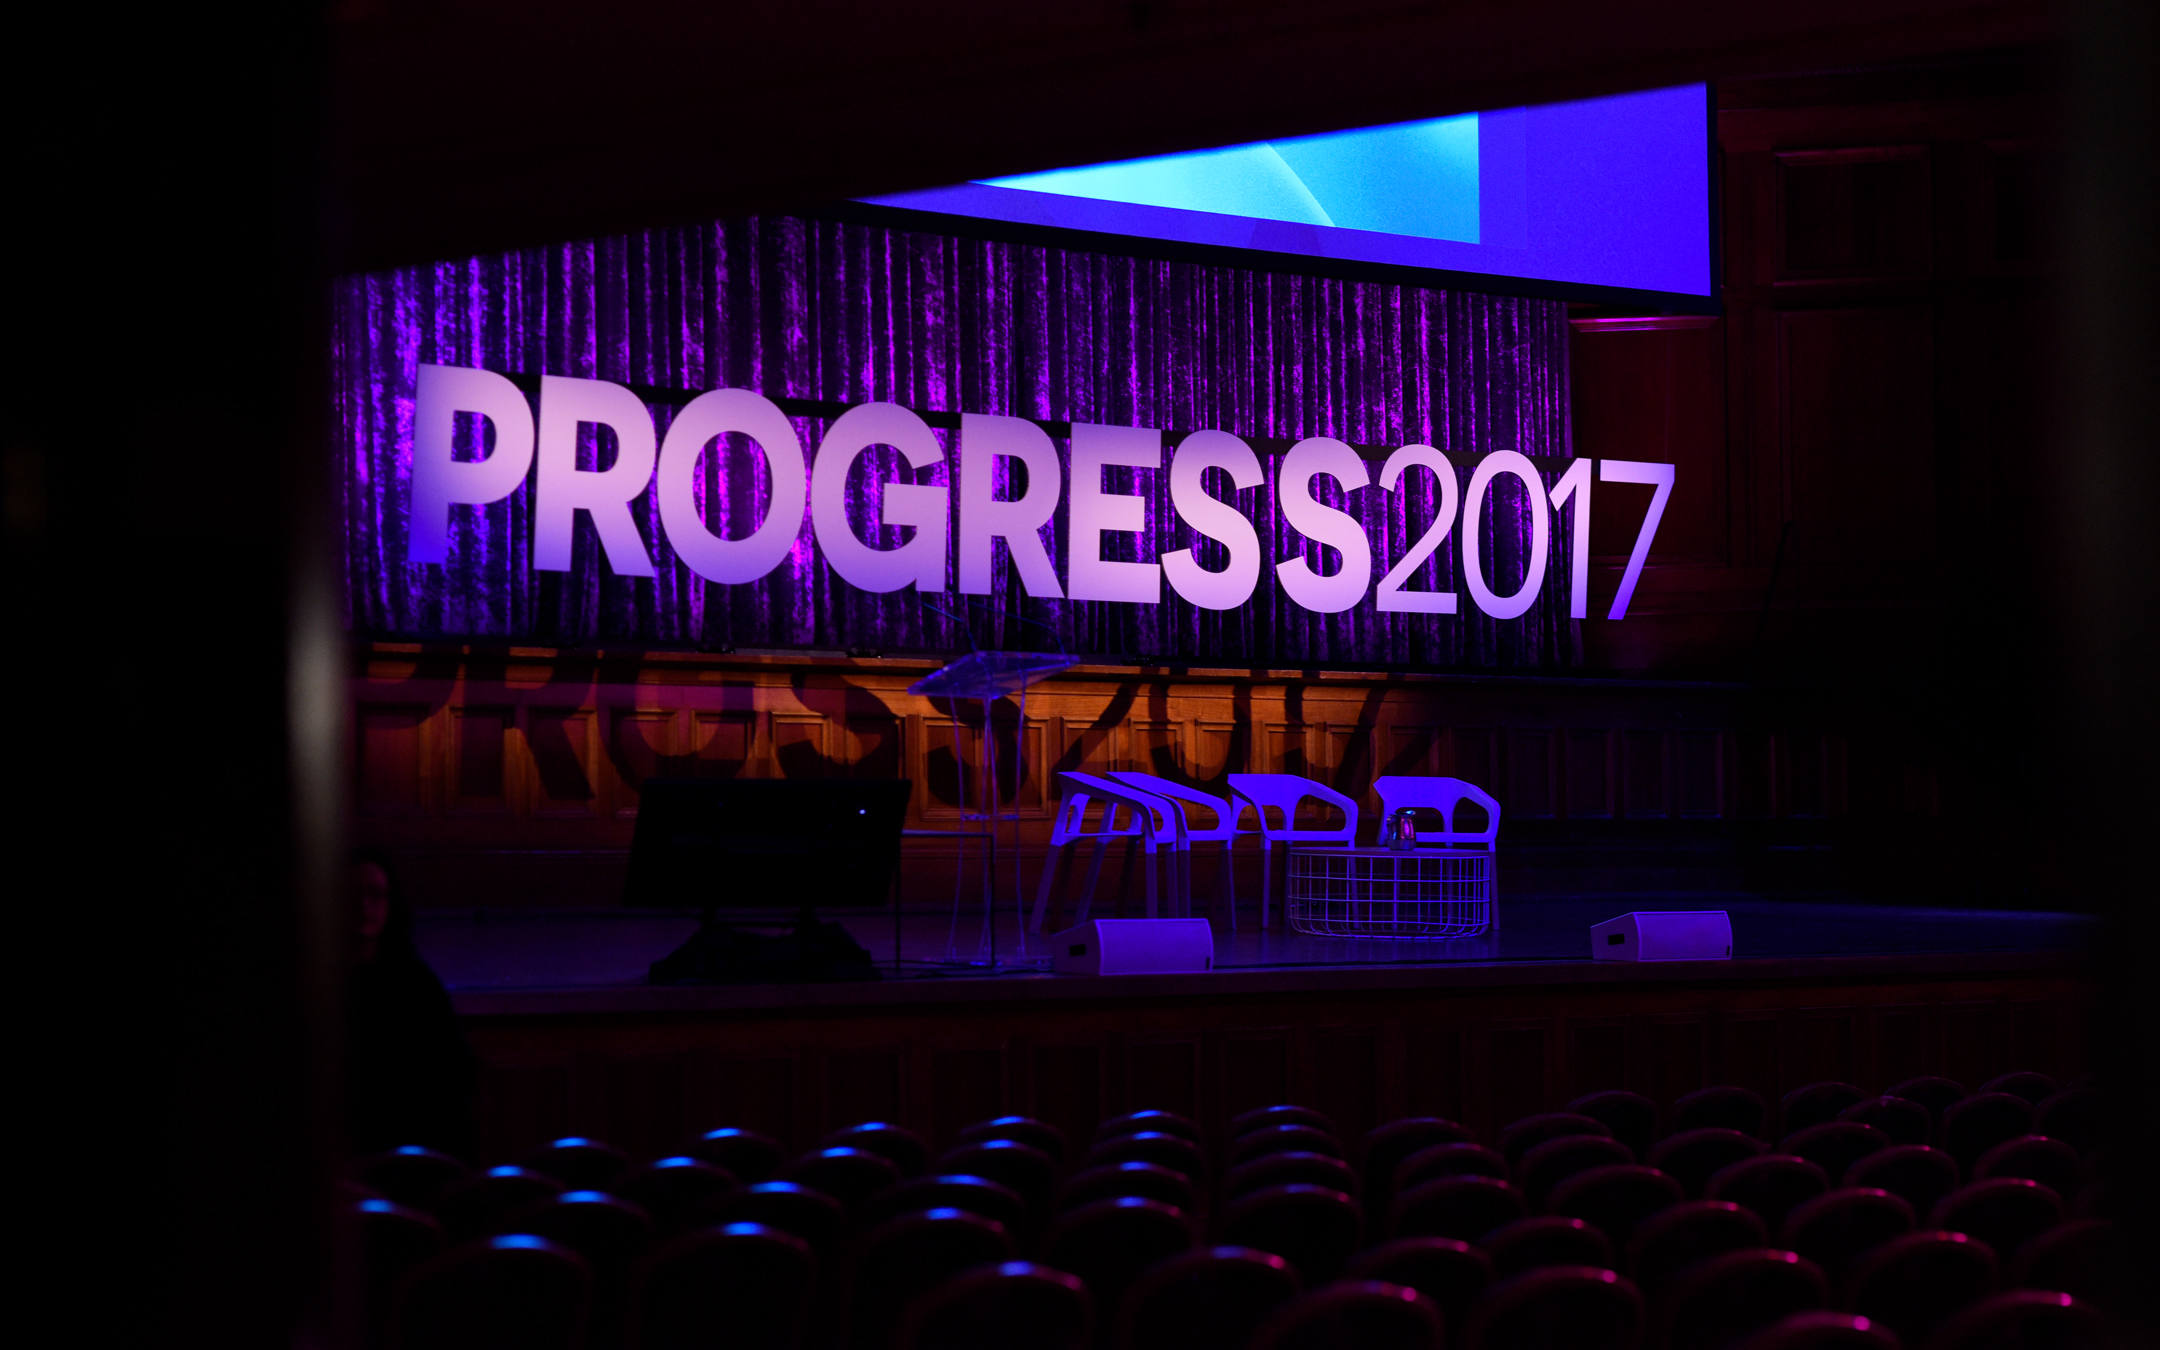 Almost ready for Progress 2017